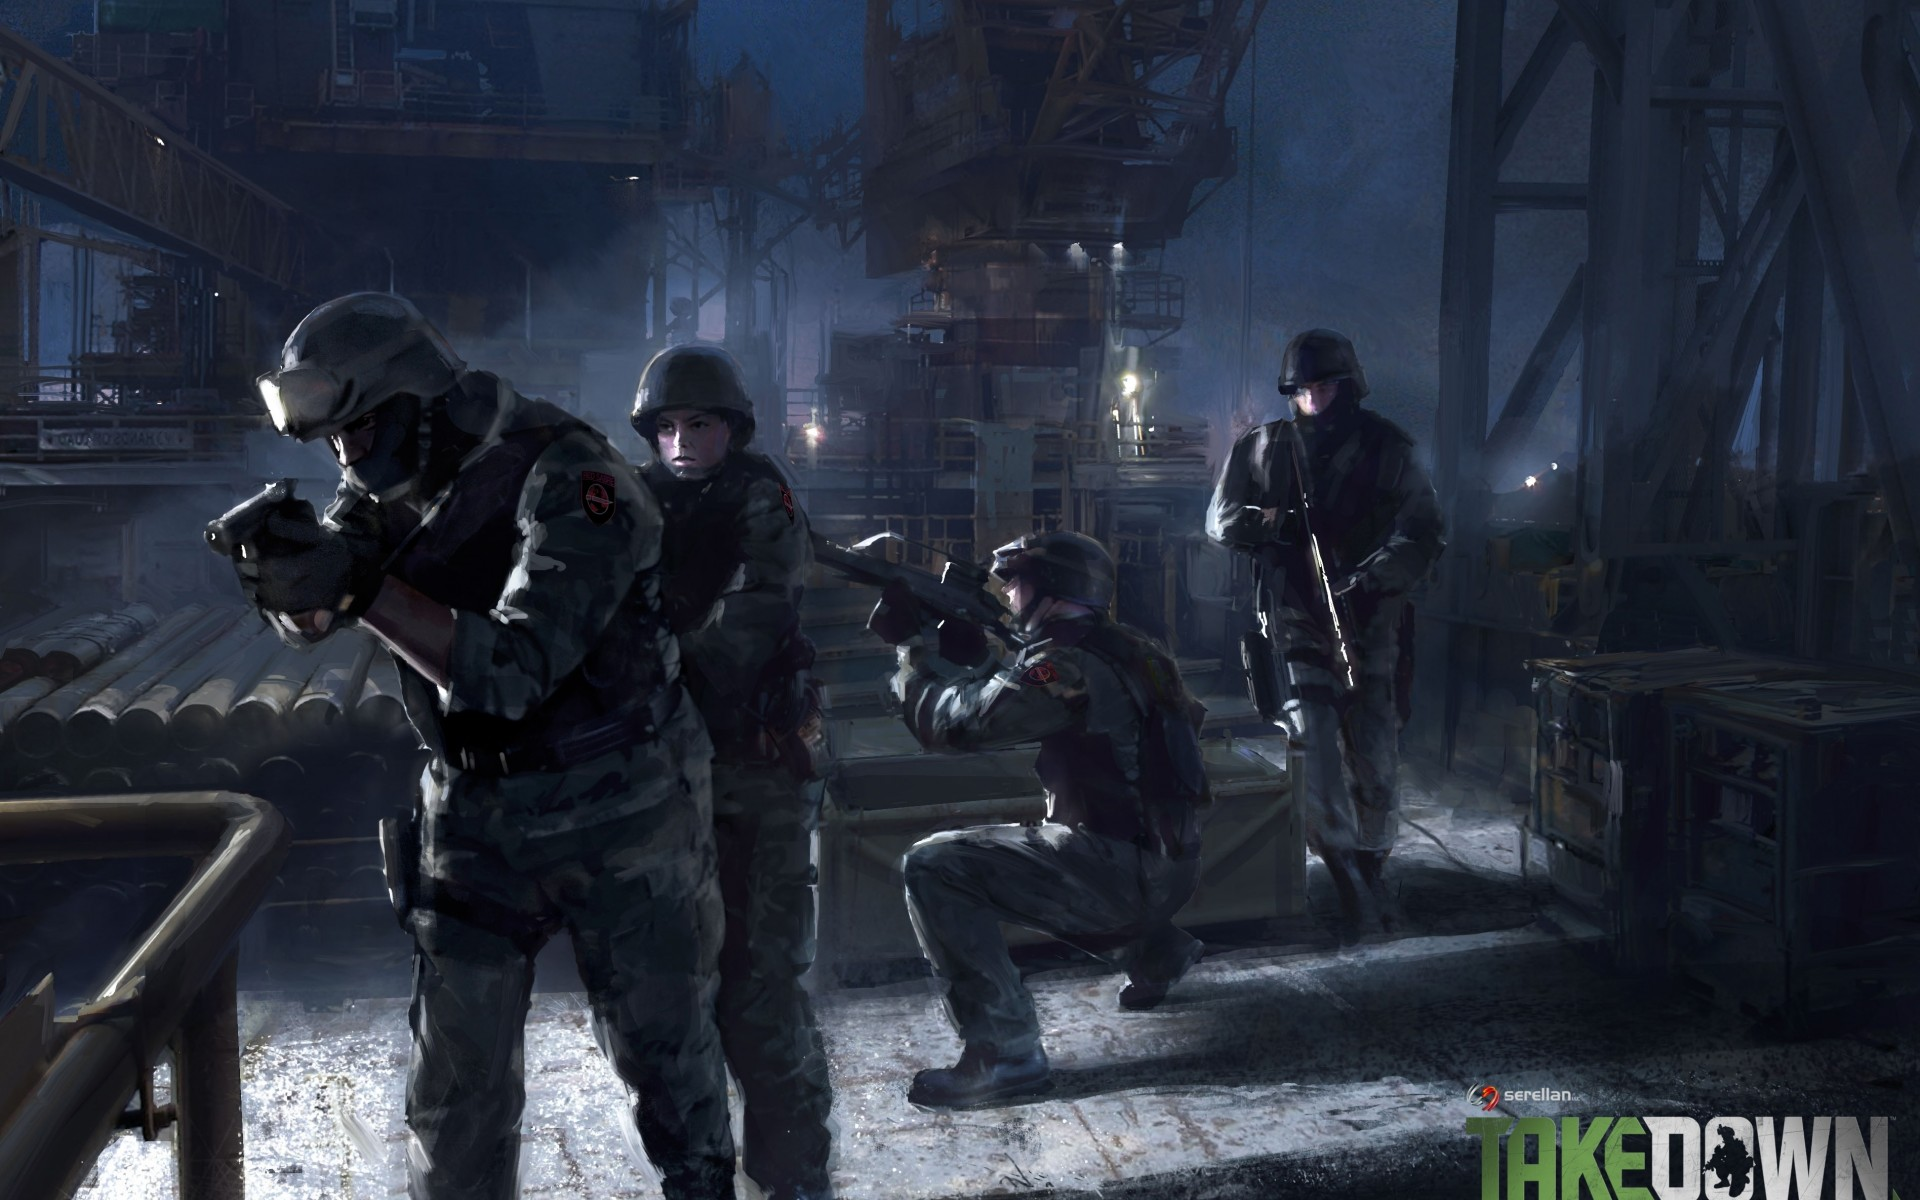 soldiers police swat street night weapons guns wallpaper background 1920x1200